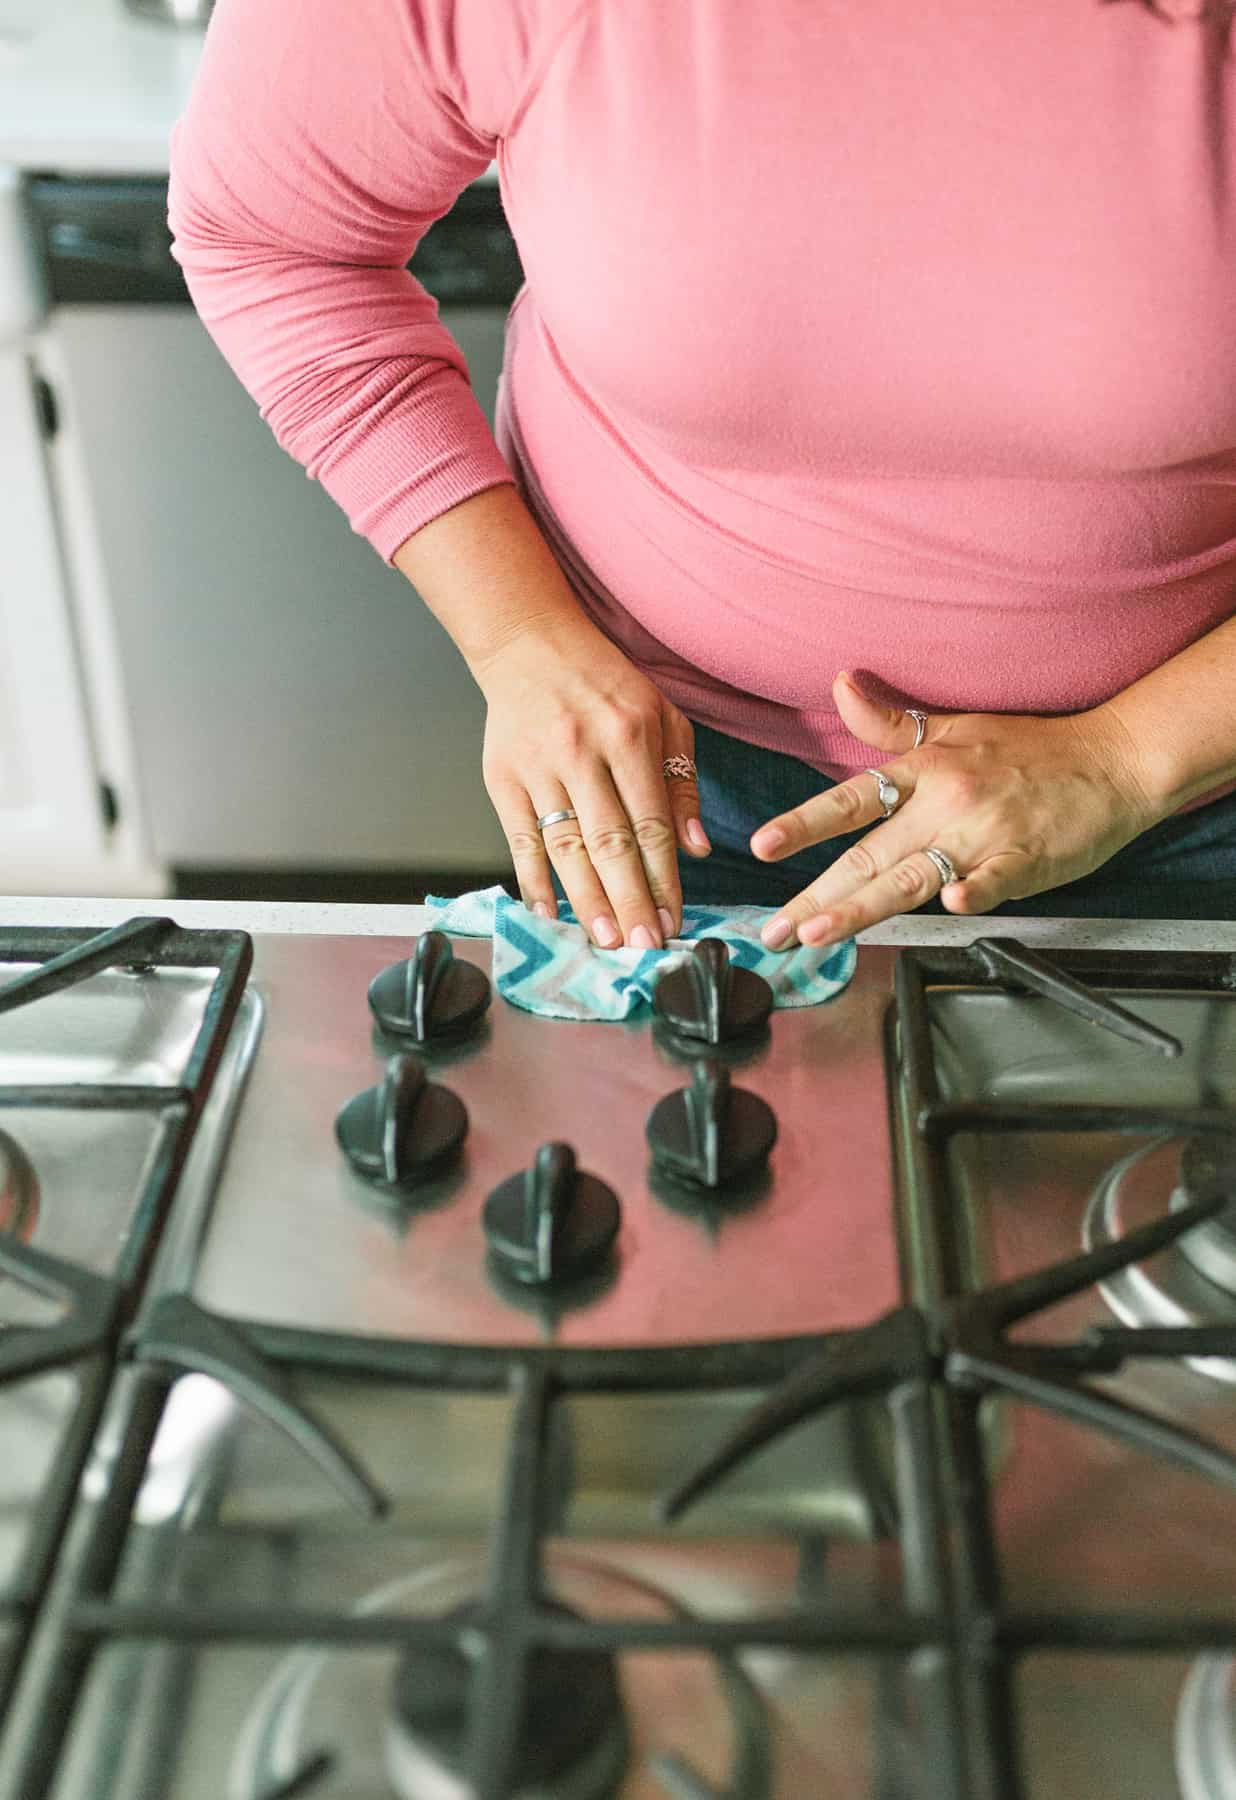 Woman using a reusable cleaning wipe to clean a stovetop.